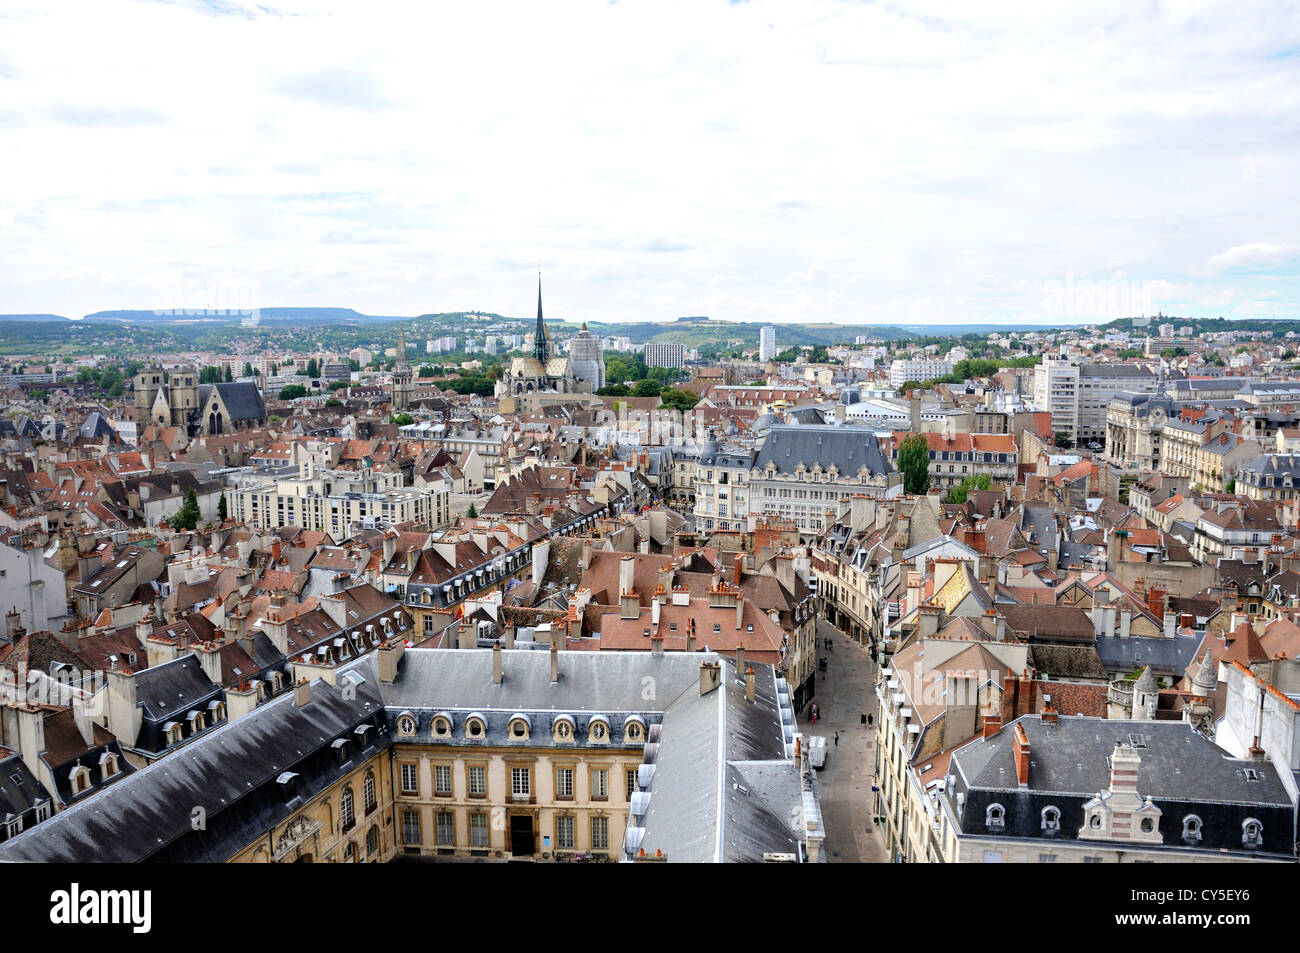 View of Dijon city, France from Philippe le Bon Tower, Dijon, Côte d'Or, Burgundy, France, Europe Stock Photo